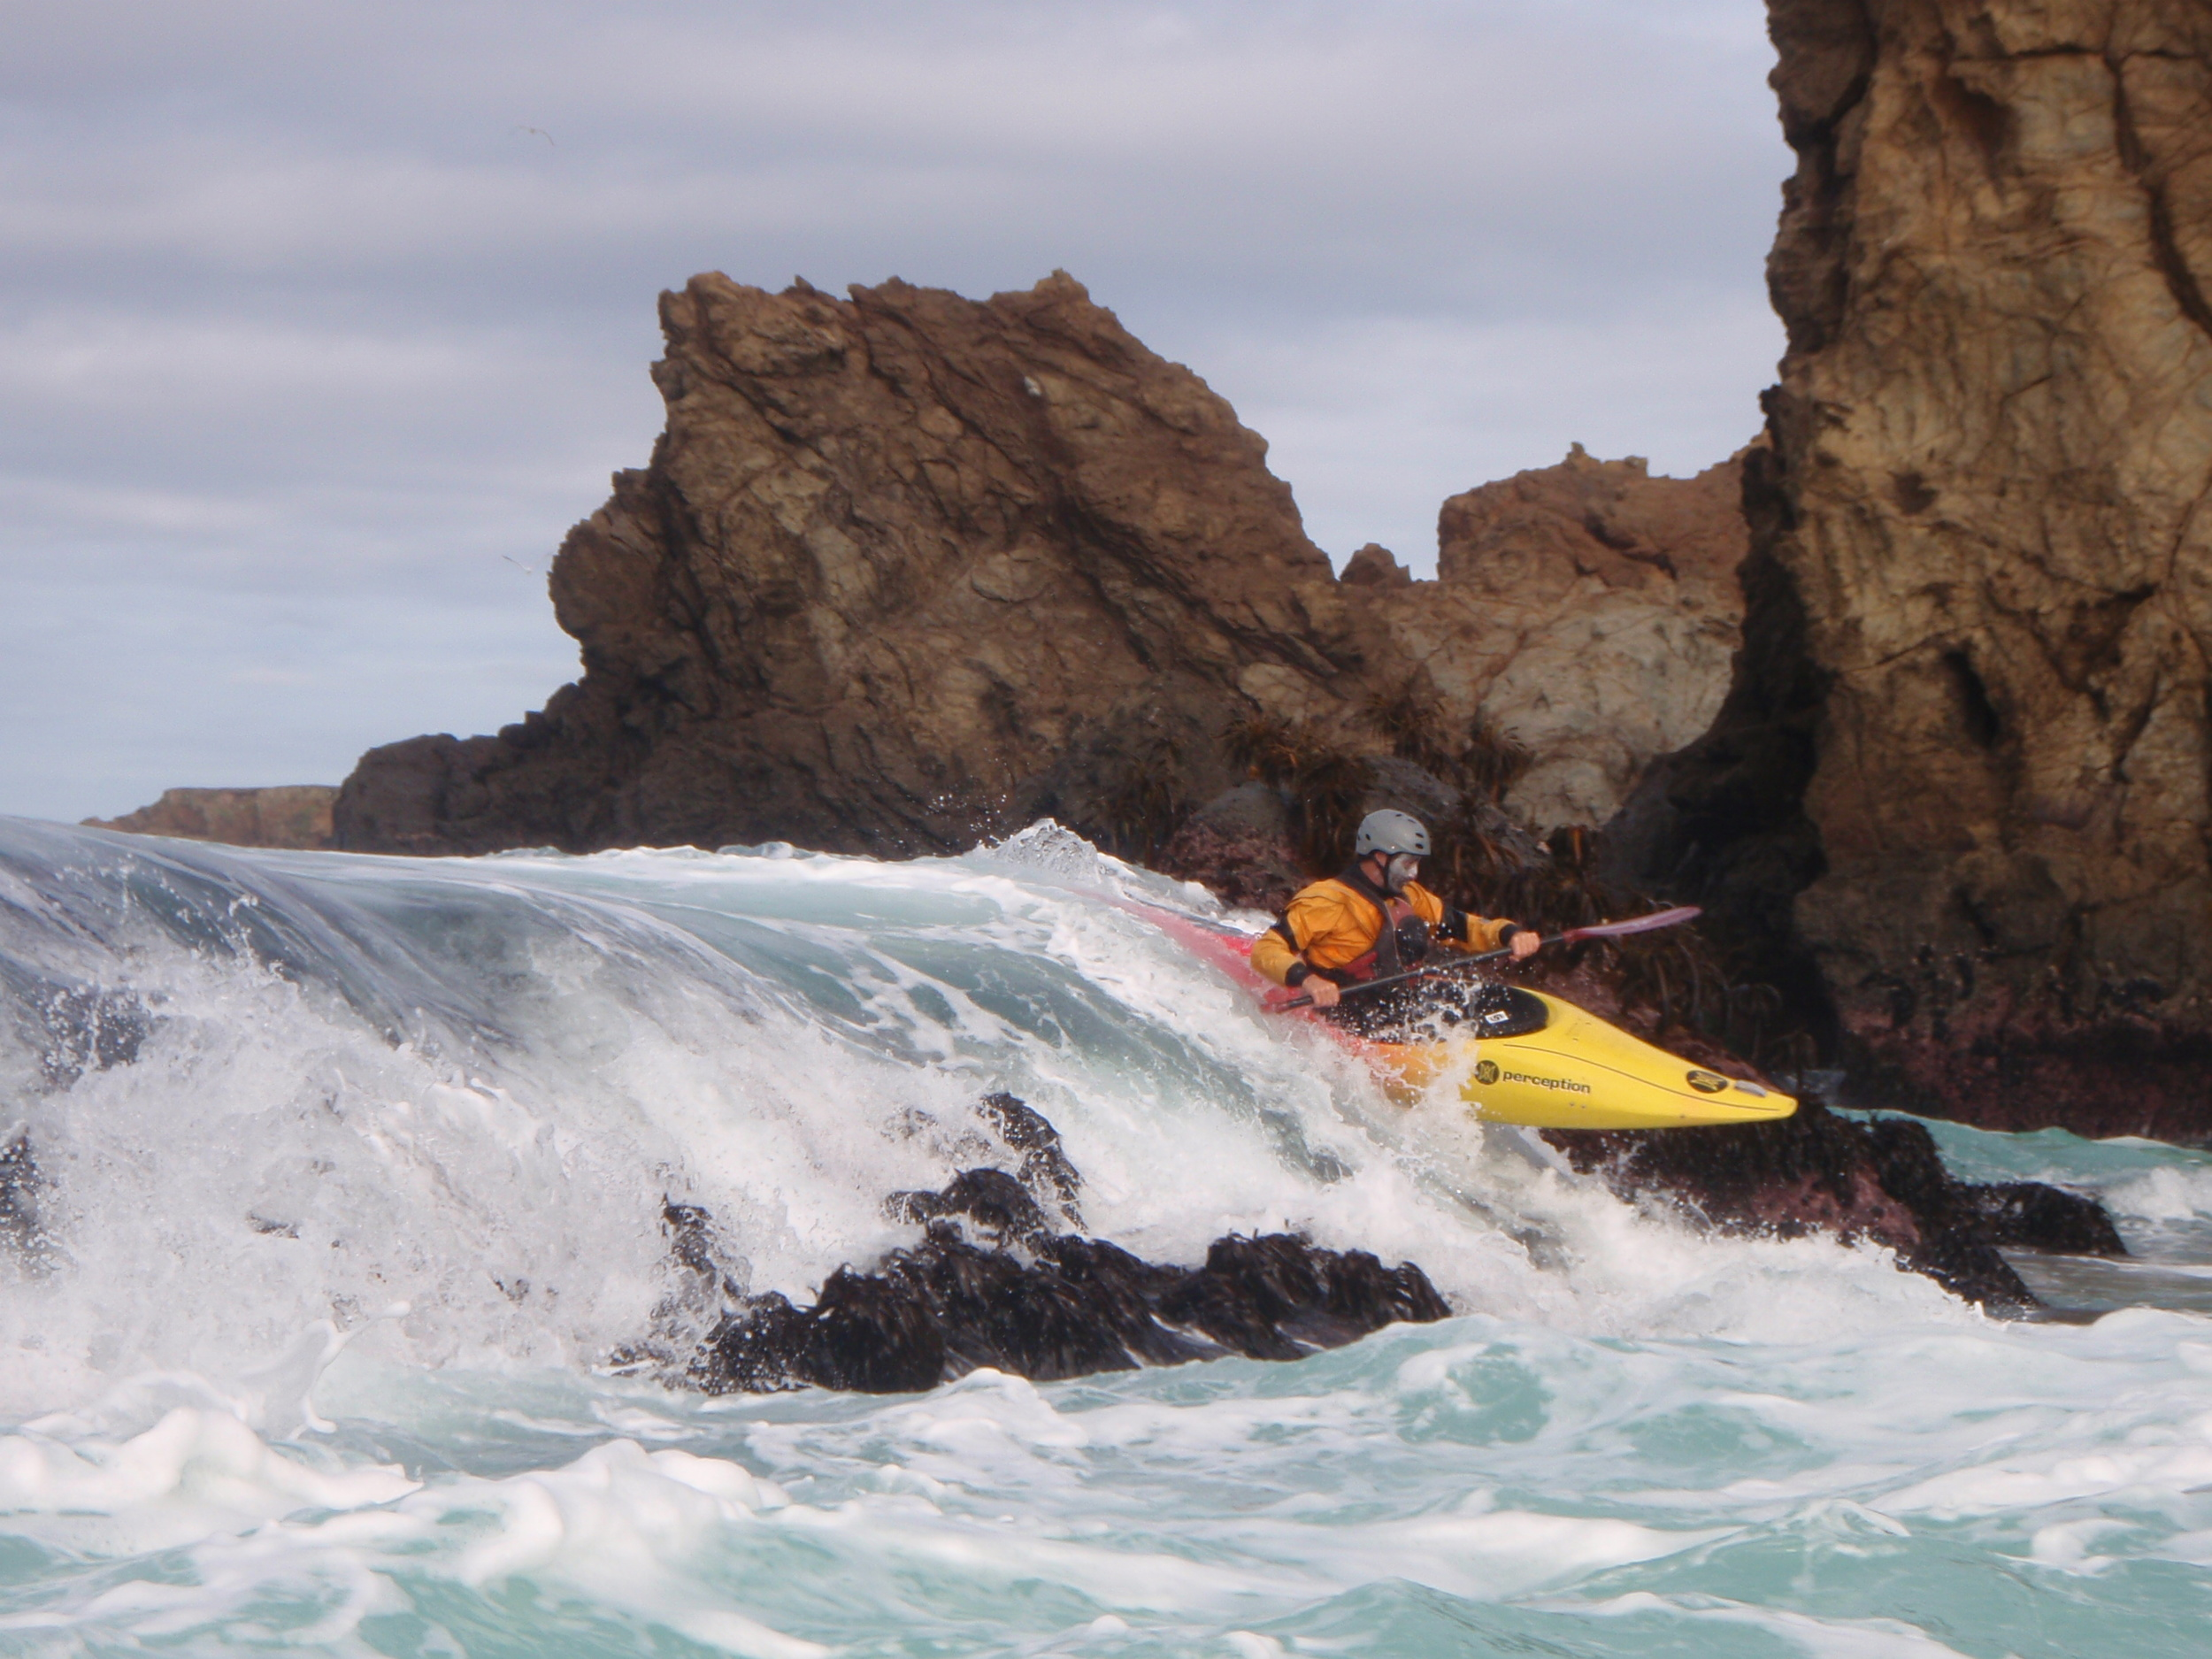 Whitewater ocean kayaking on the Mendocino Coast - aka rock gardening